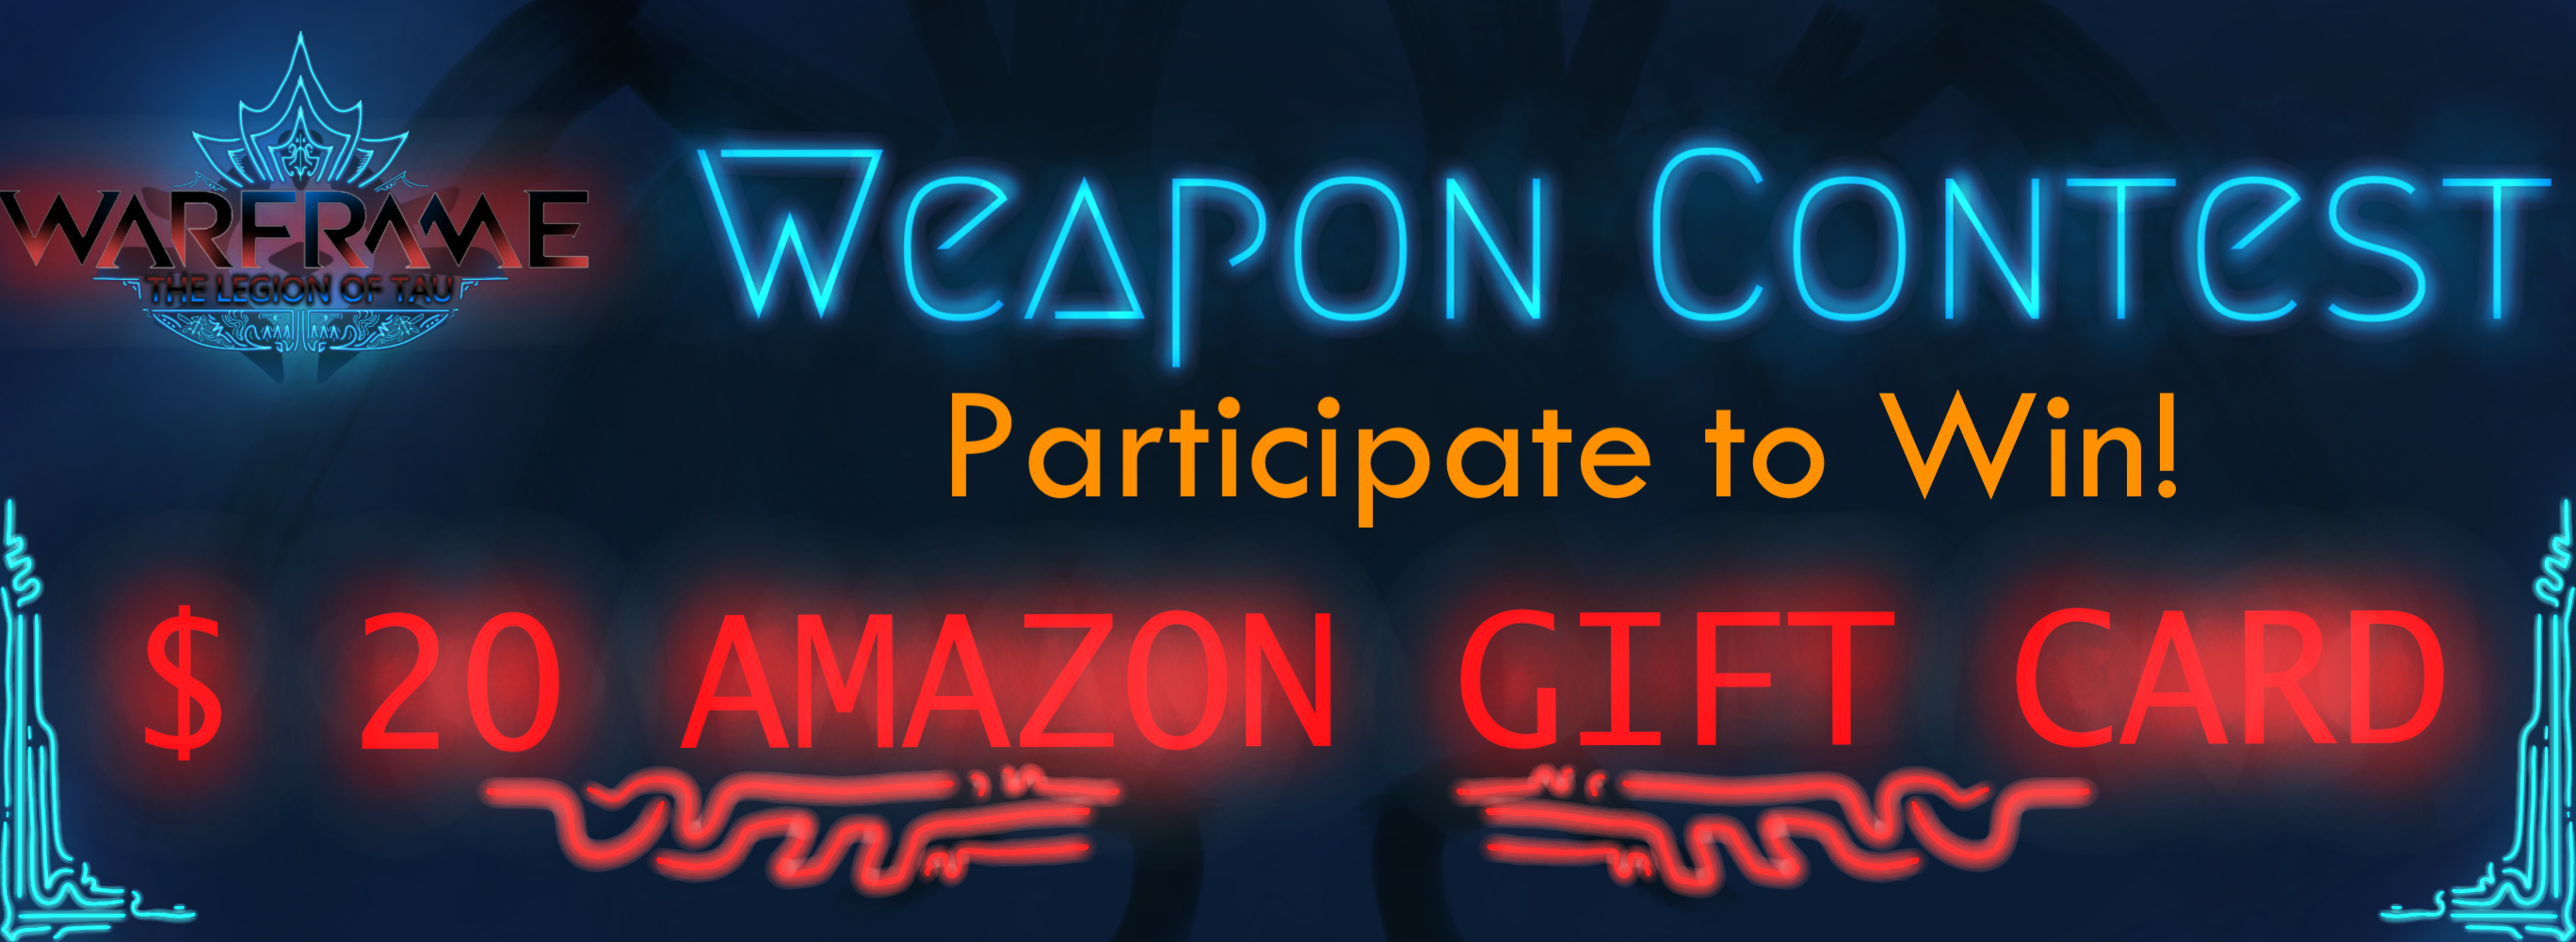 Banner_Prize.png